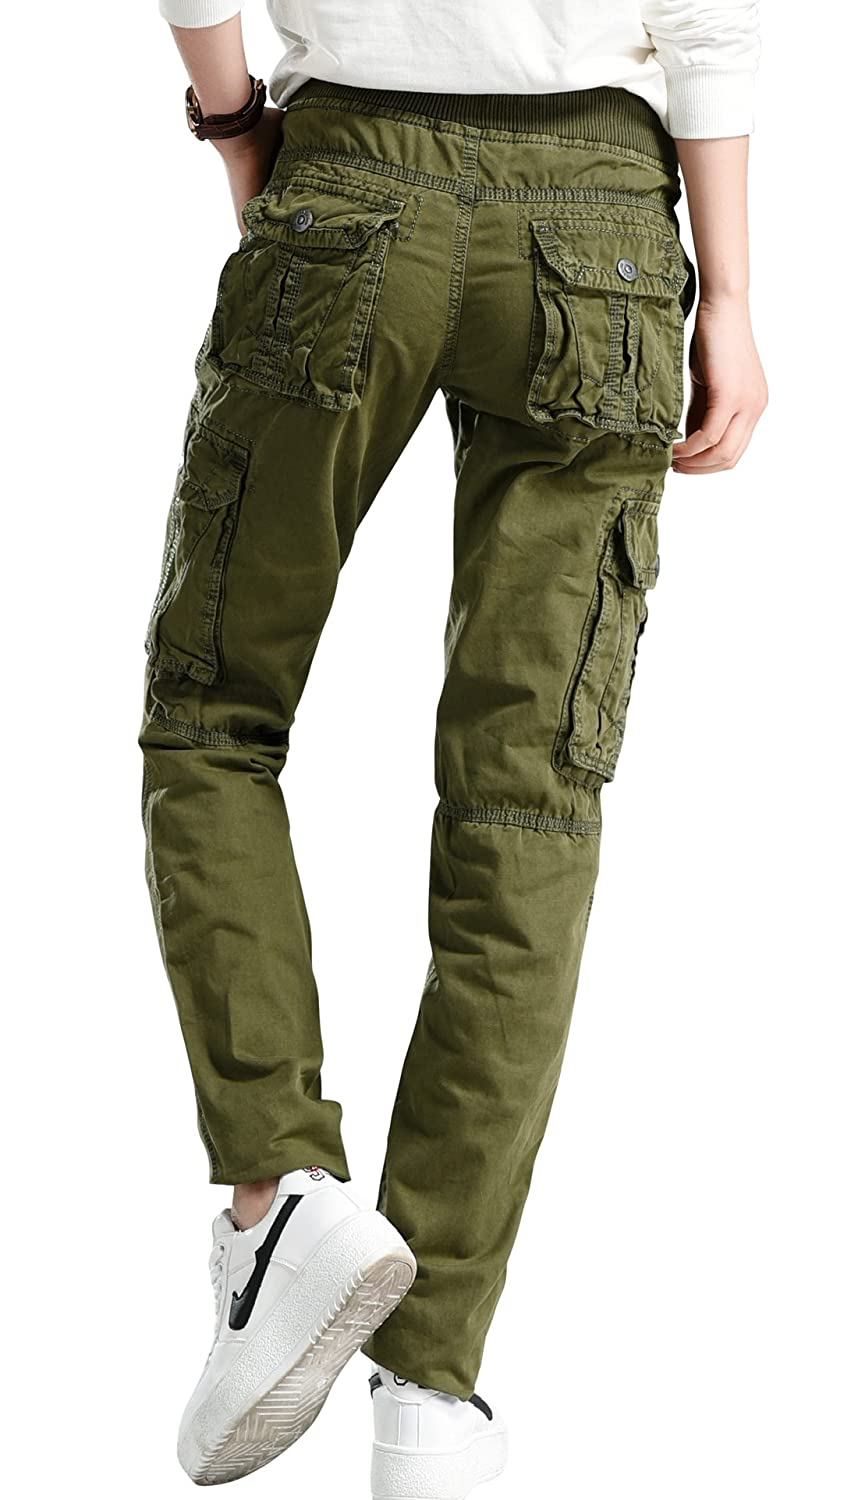 Chouyatou Women's Casual Camouflage Multi Pockets Cargo Pants at ...